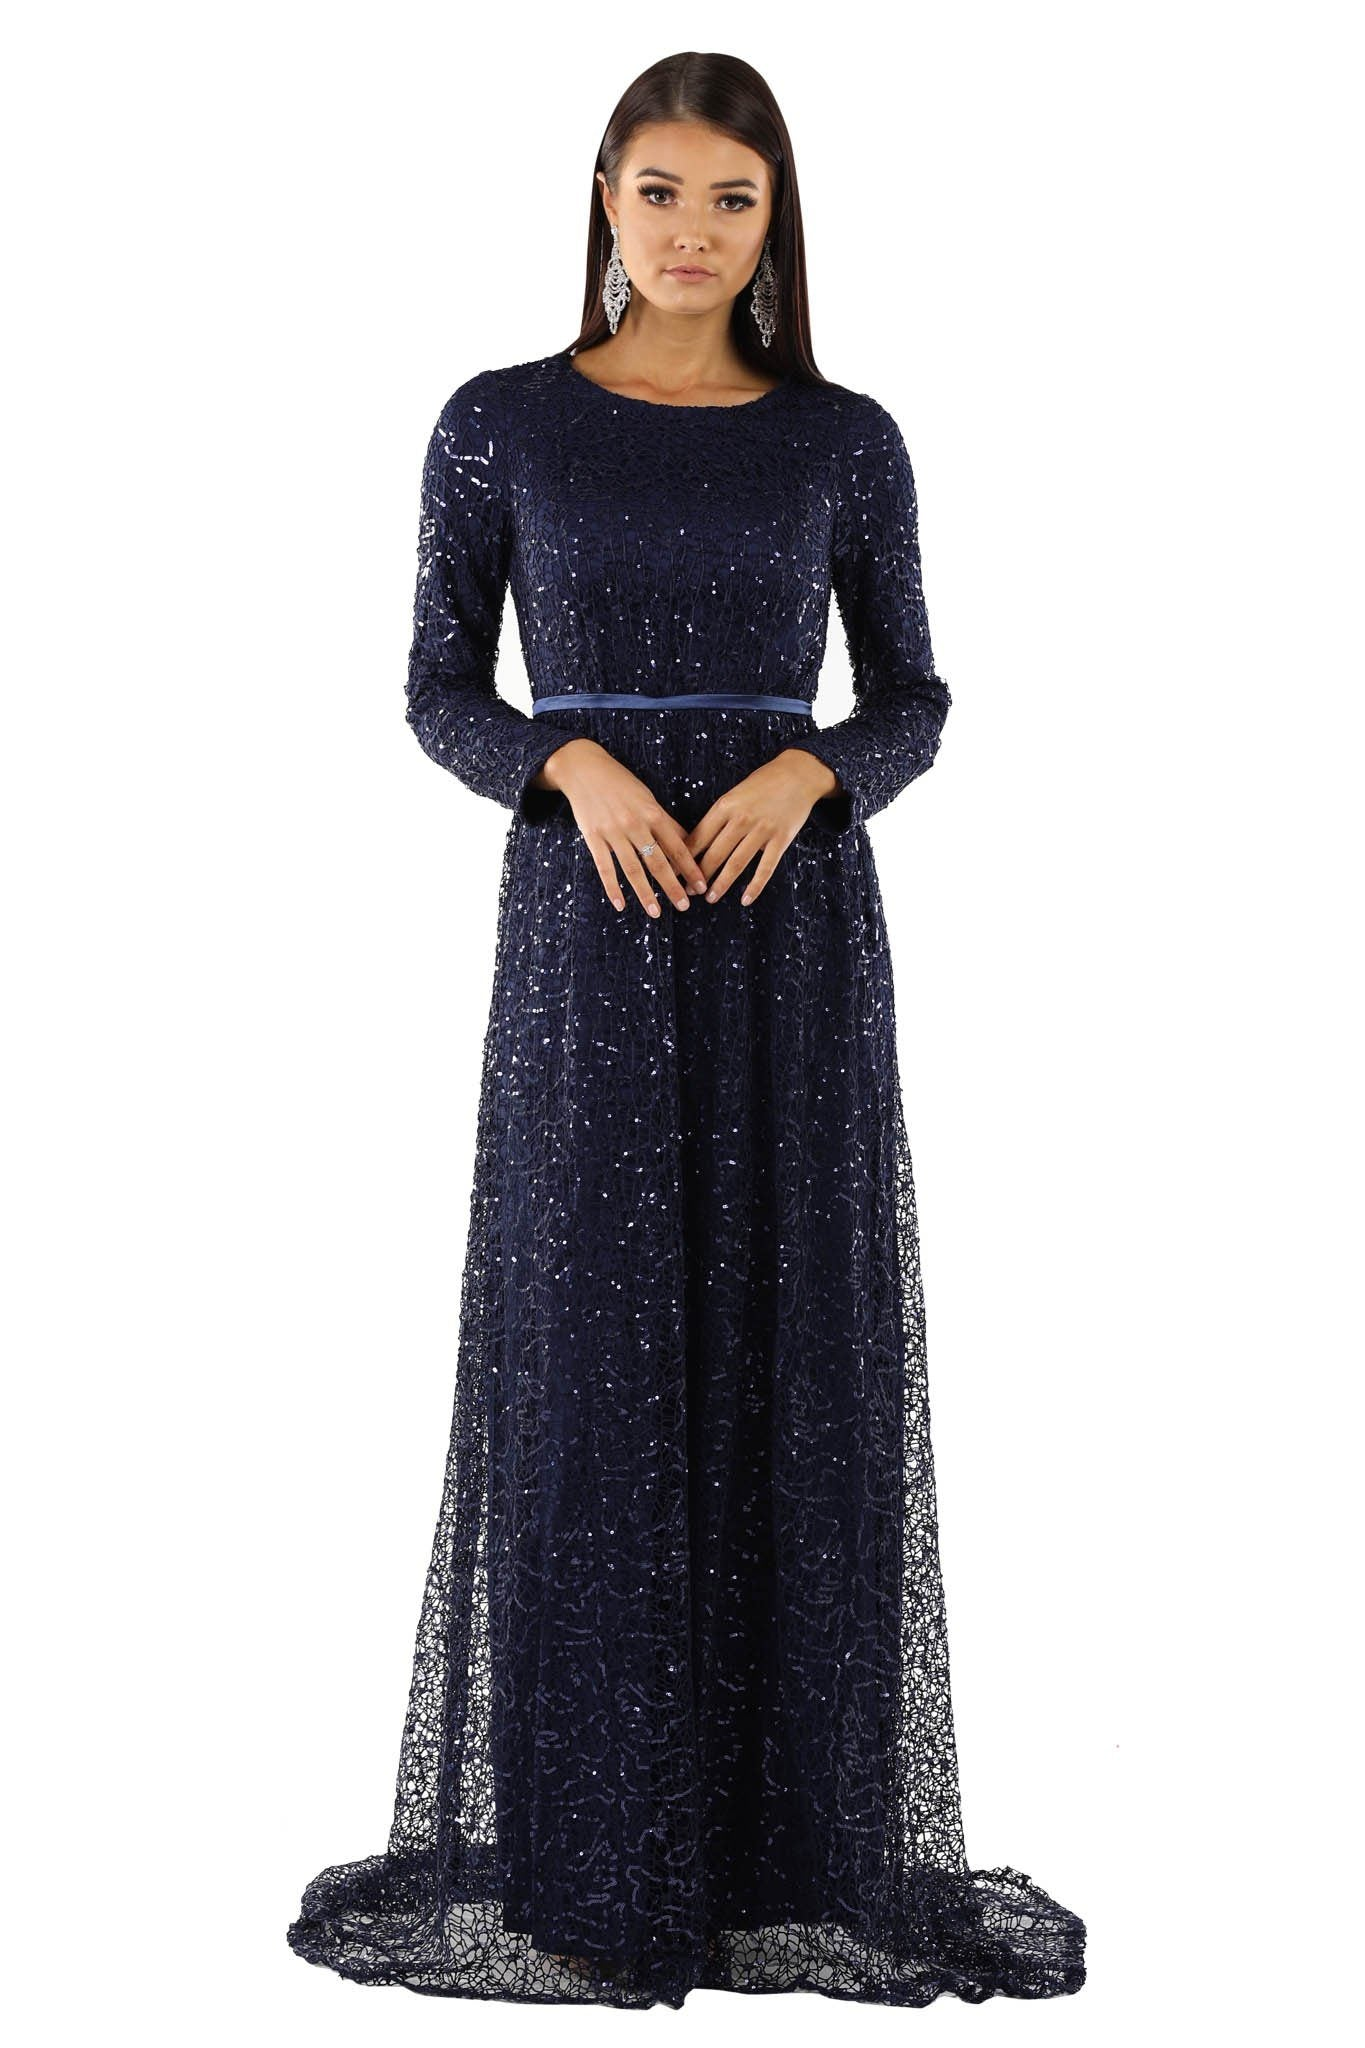 Navy deep blue sequin long sleeve evening gown with boat neck and satin belt